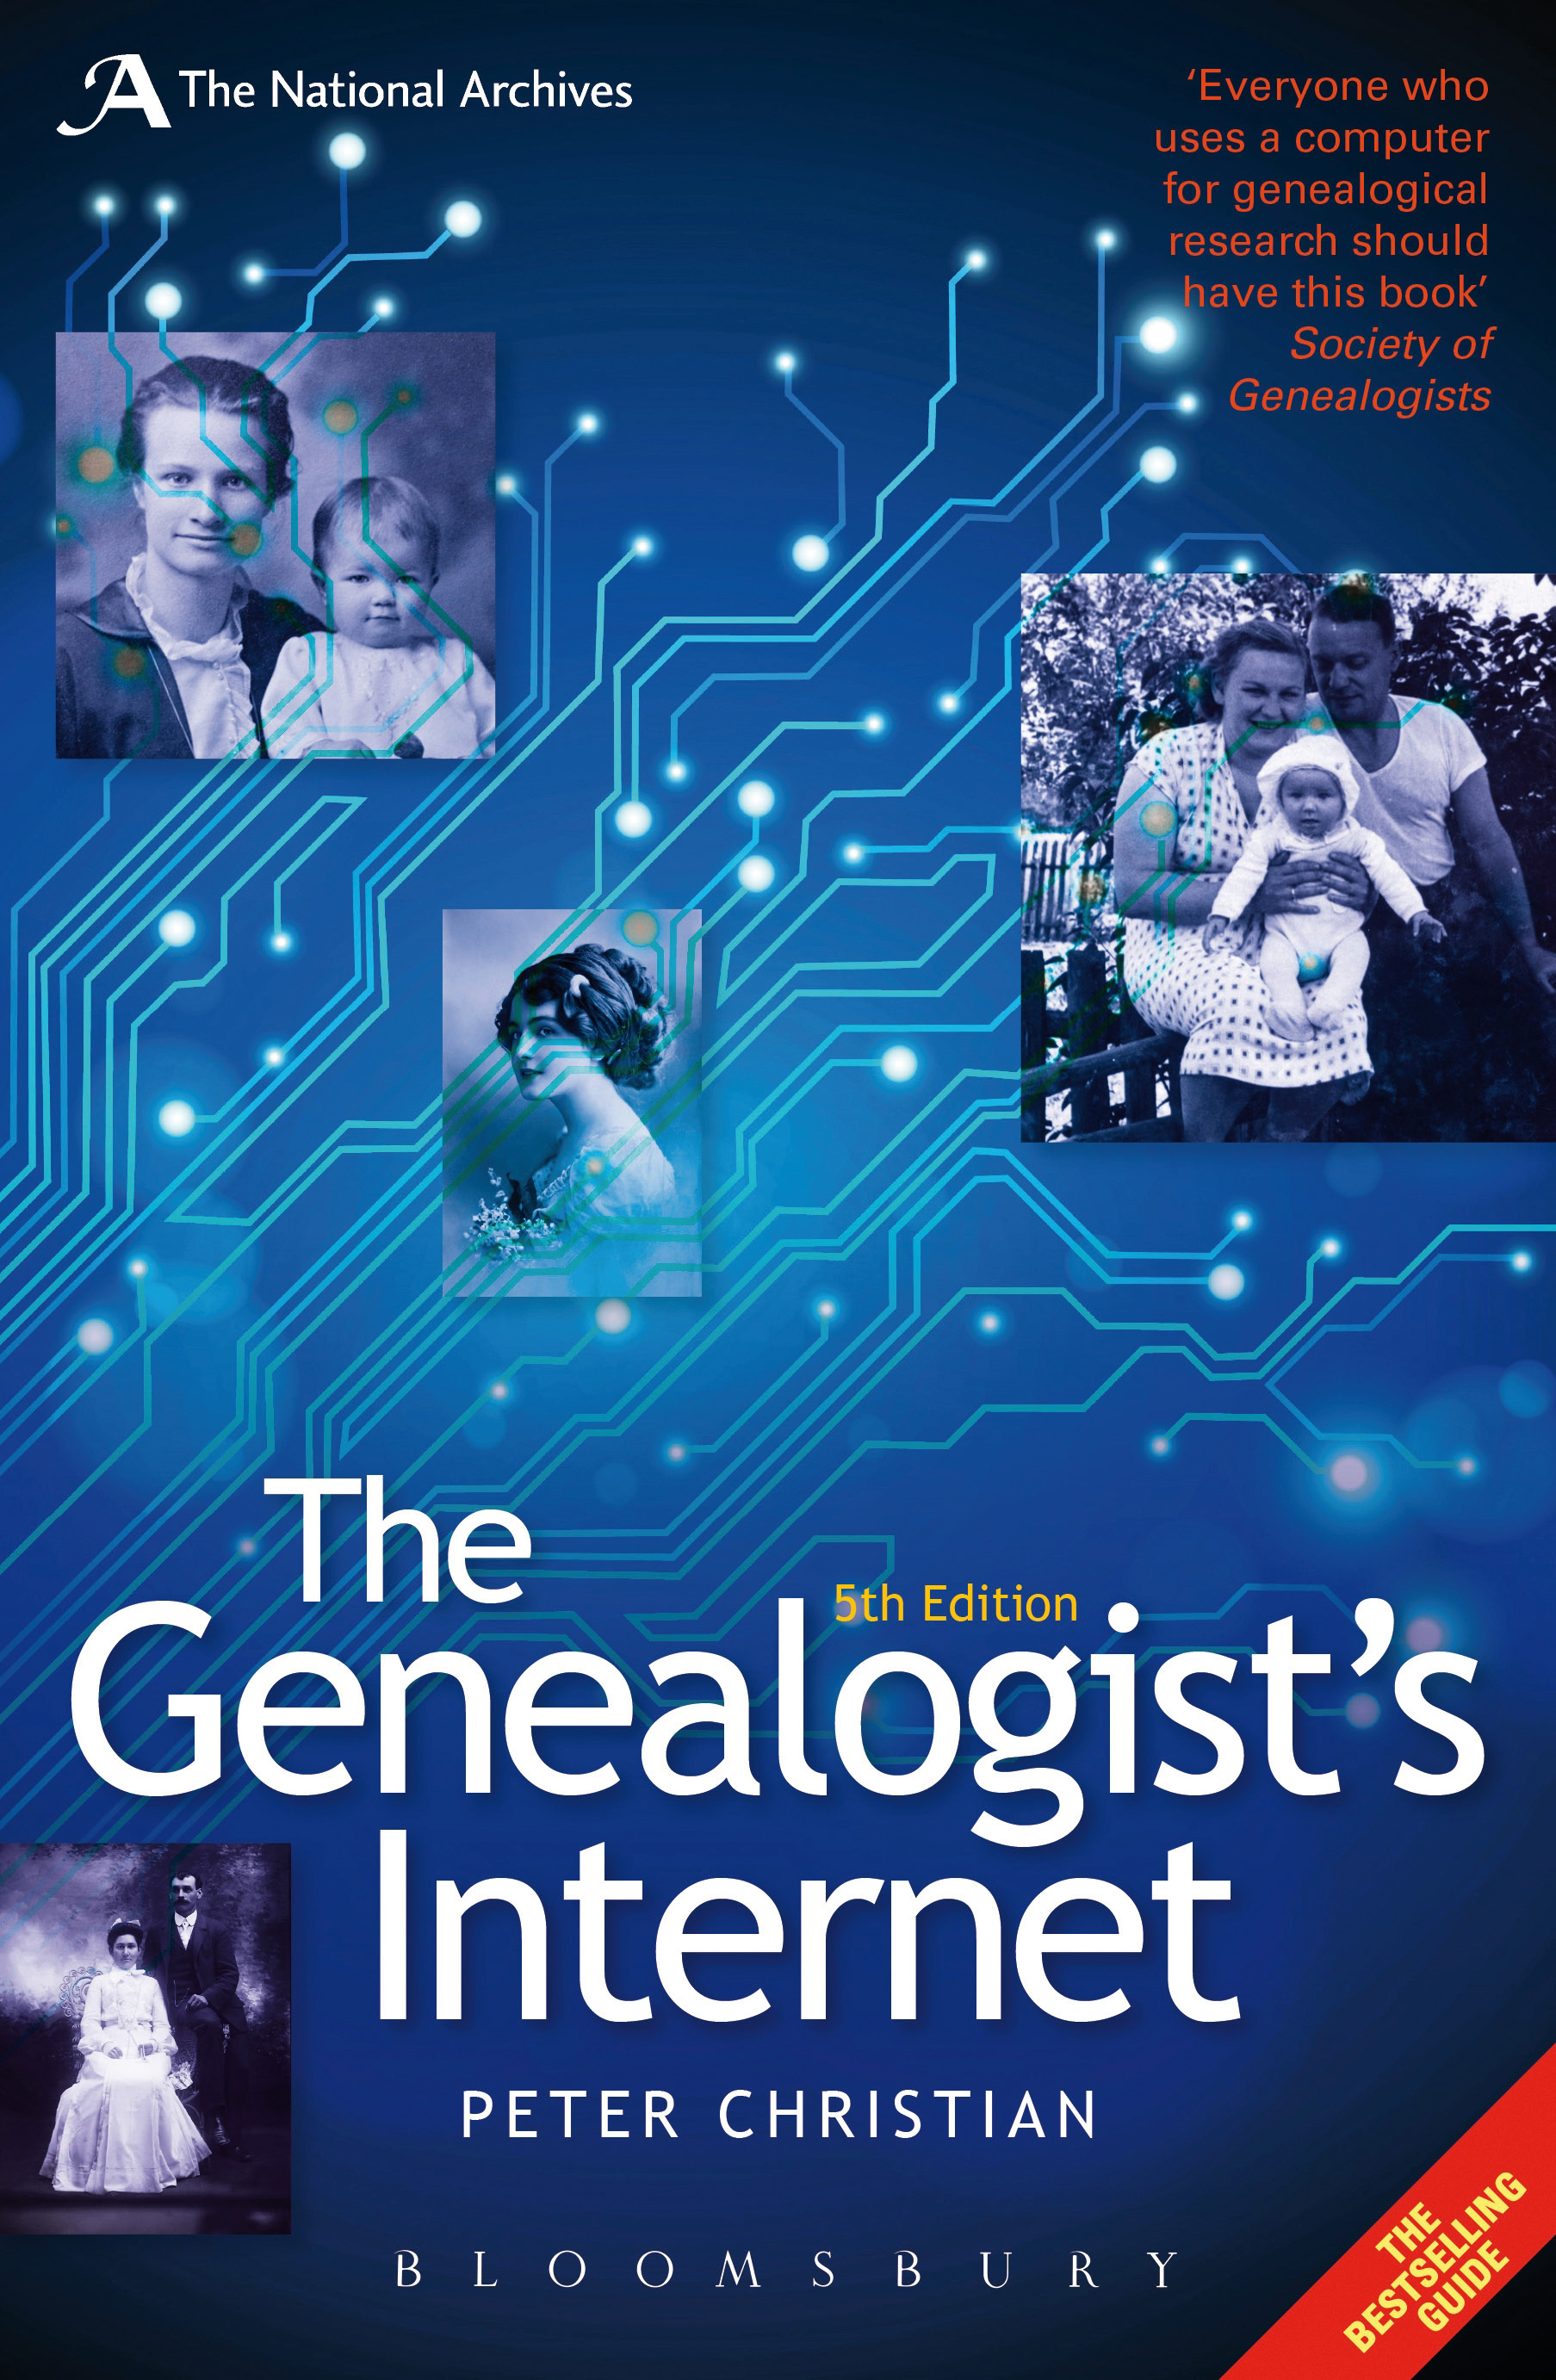 The Genealogist's Internet by Peter Christian, ISBN: 9781408159576